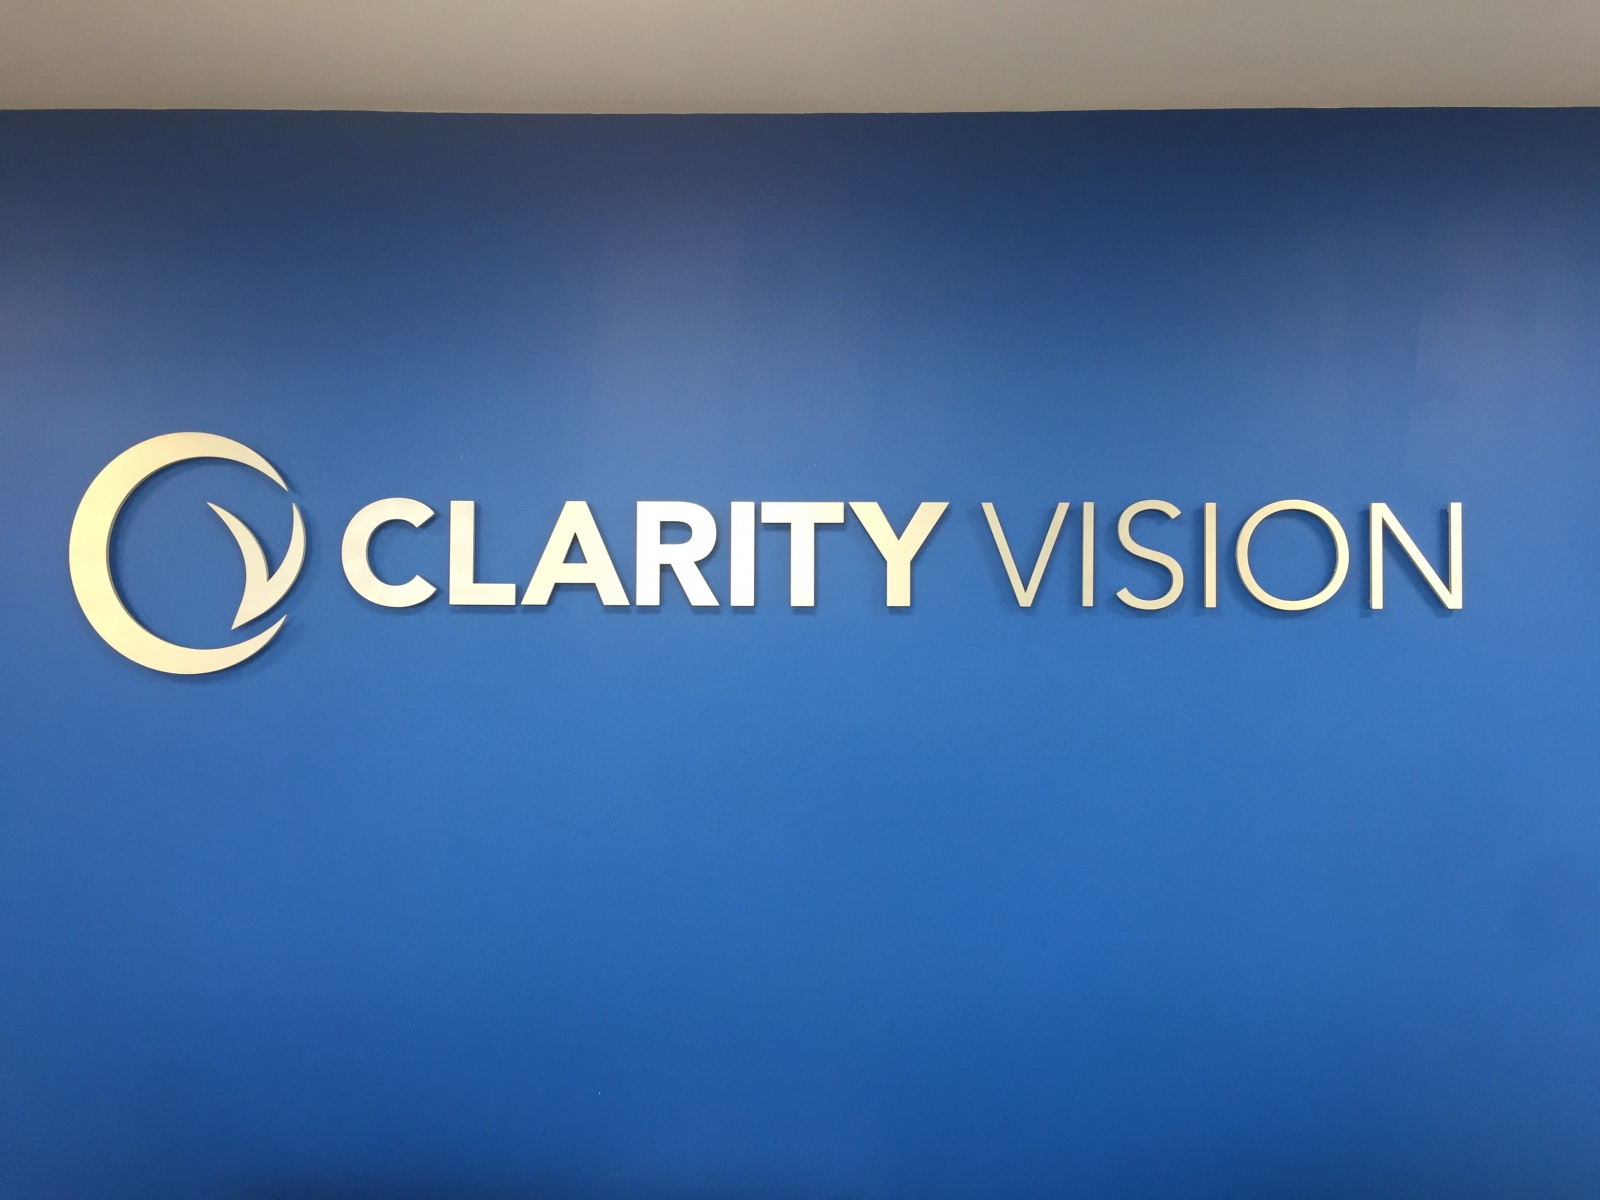 Clarity-Vision-3